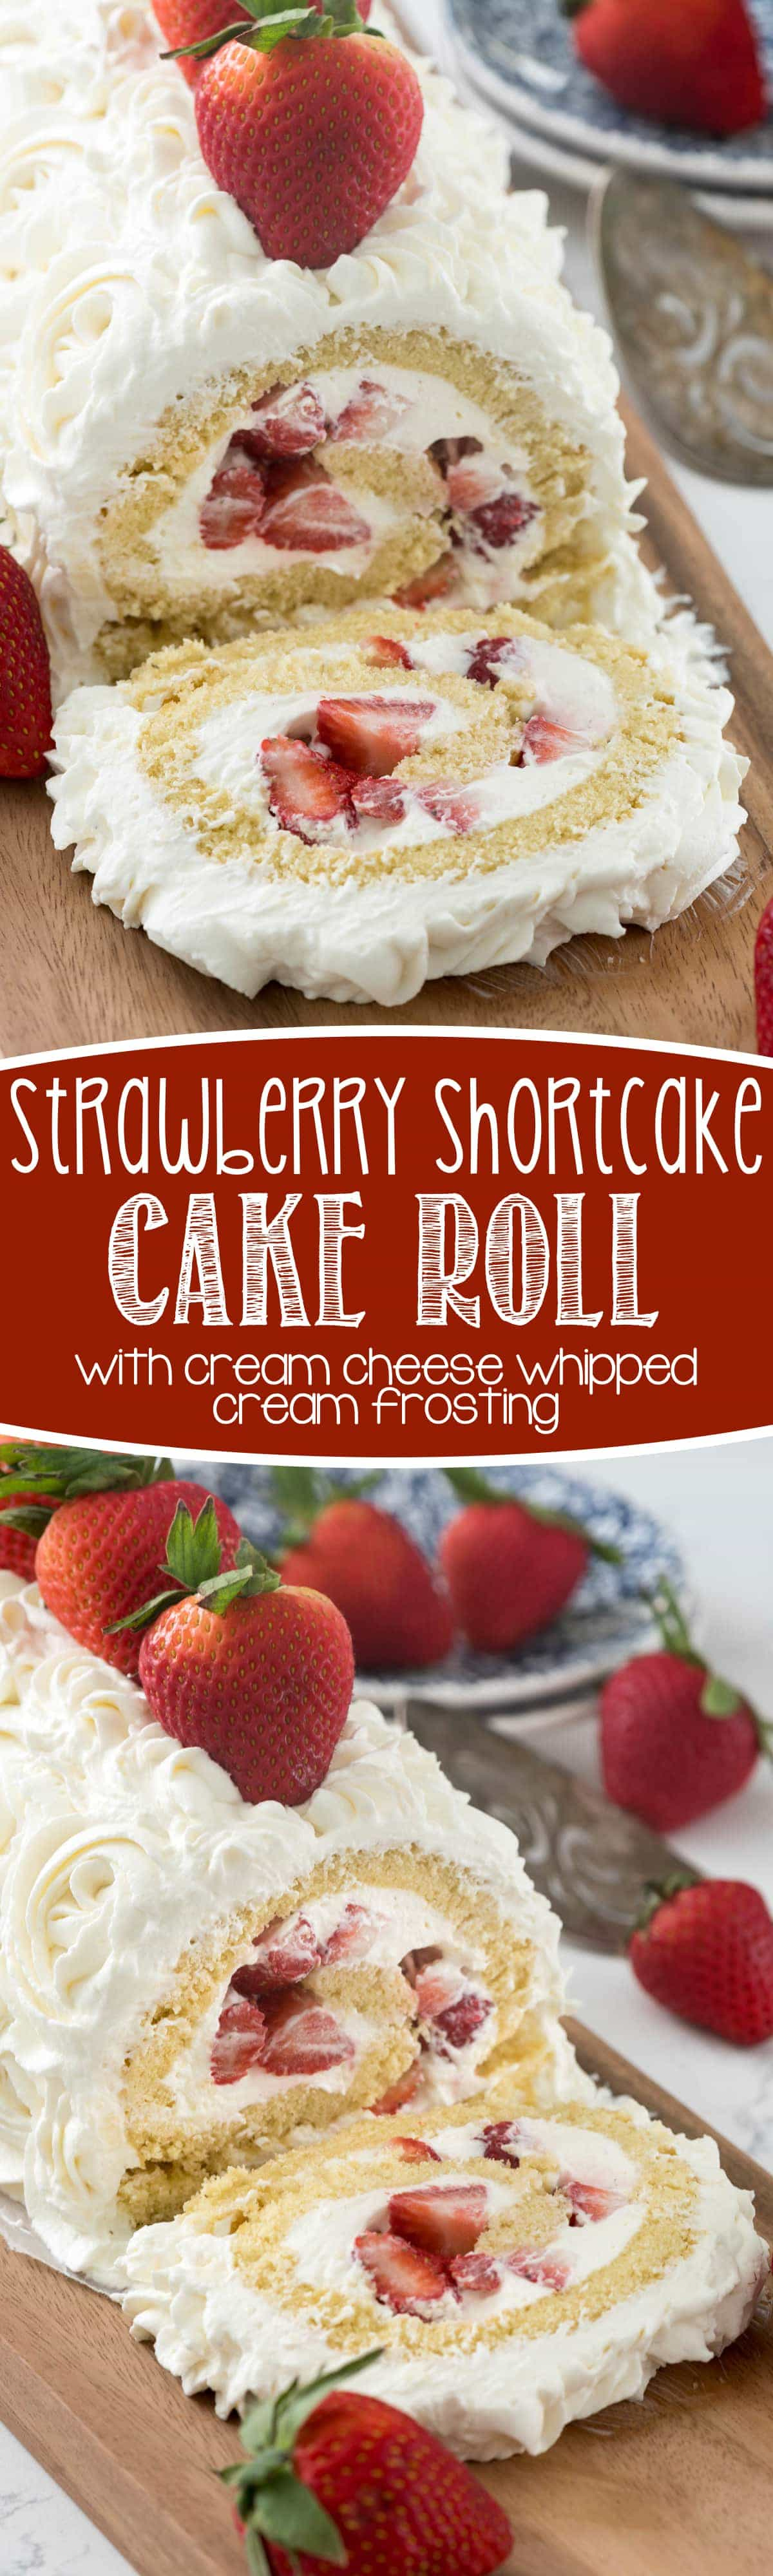 Strawberry Shortcake Cake Roll Recipe